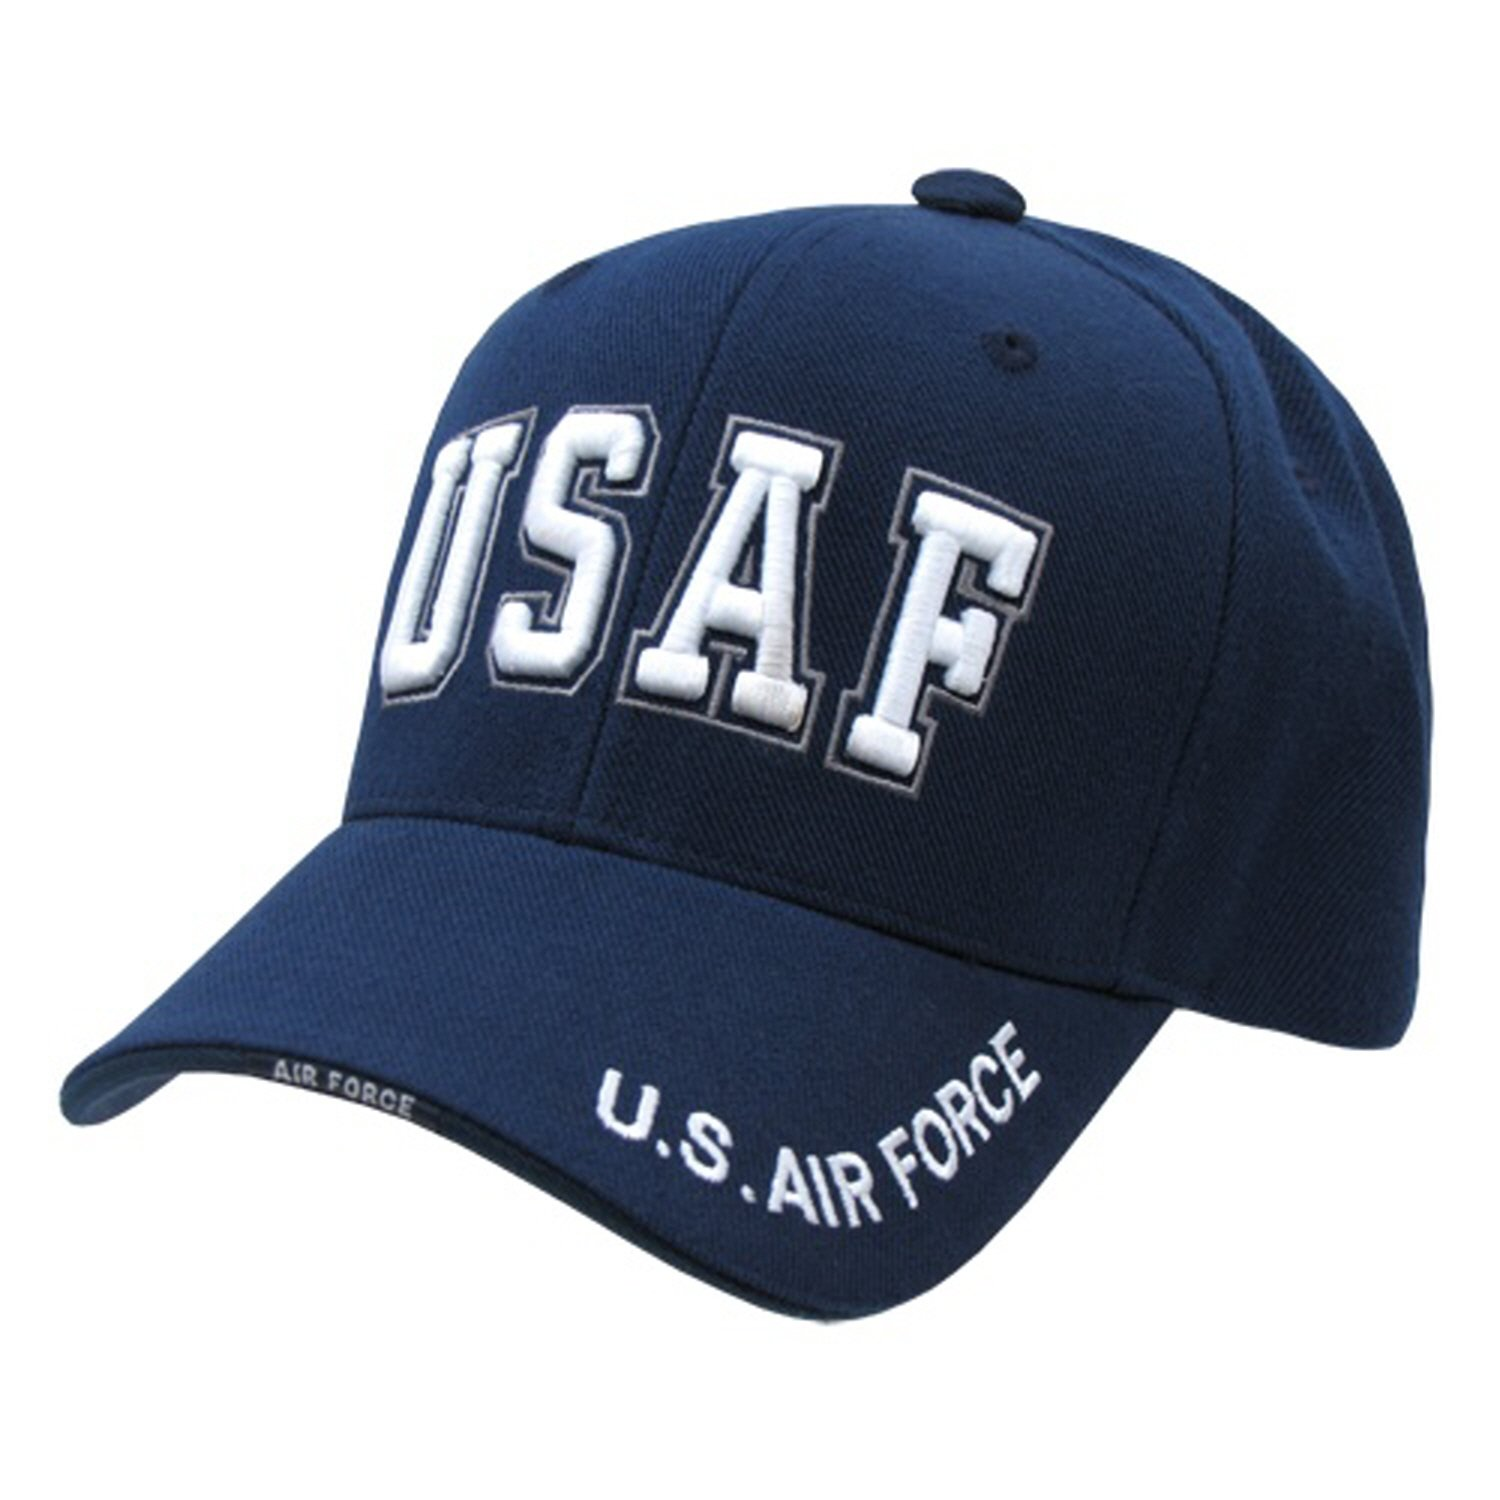 RAPID DOMINANCE Military Workout Branch Caps (Adjustable , USAF Navy) акссессуар для секс игр please